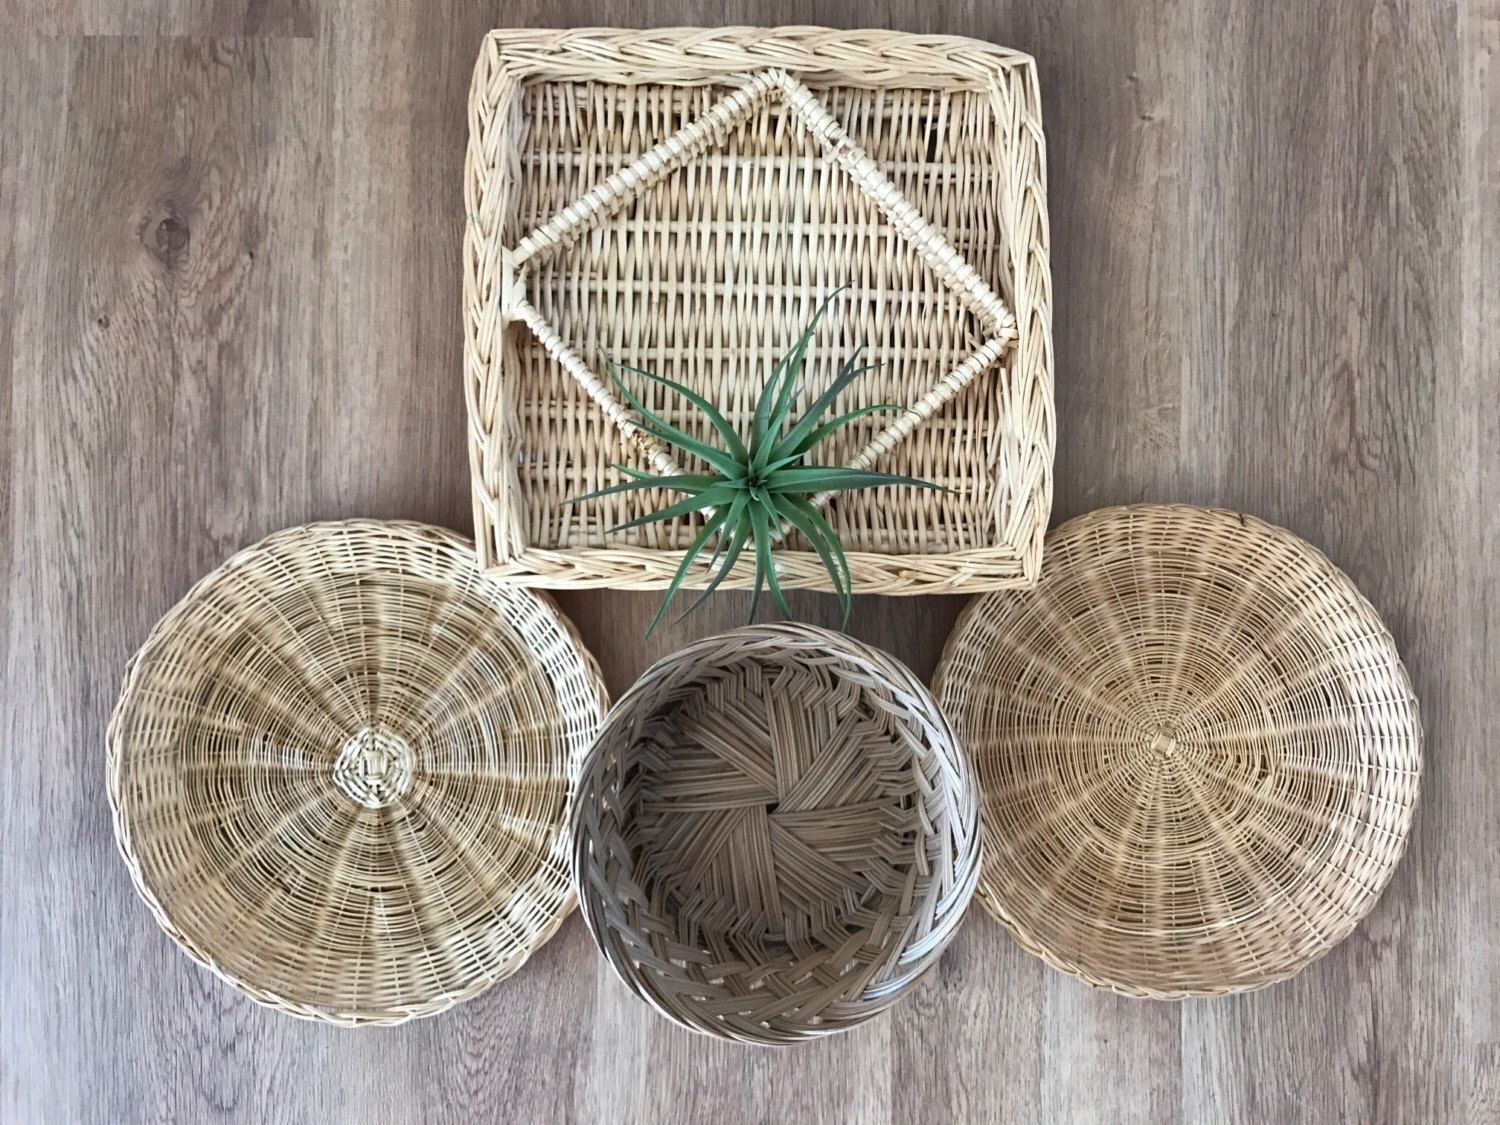 Boho Vintage Ser Of Wicker Rattan Woven Wall Hanging Baskets Within Latest Woven Basket Wall Art (View 3 of 20)